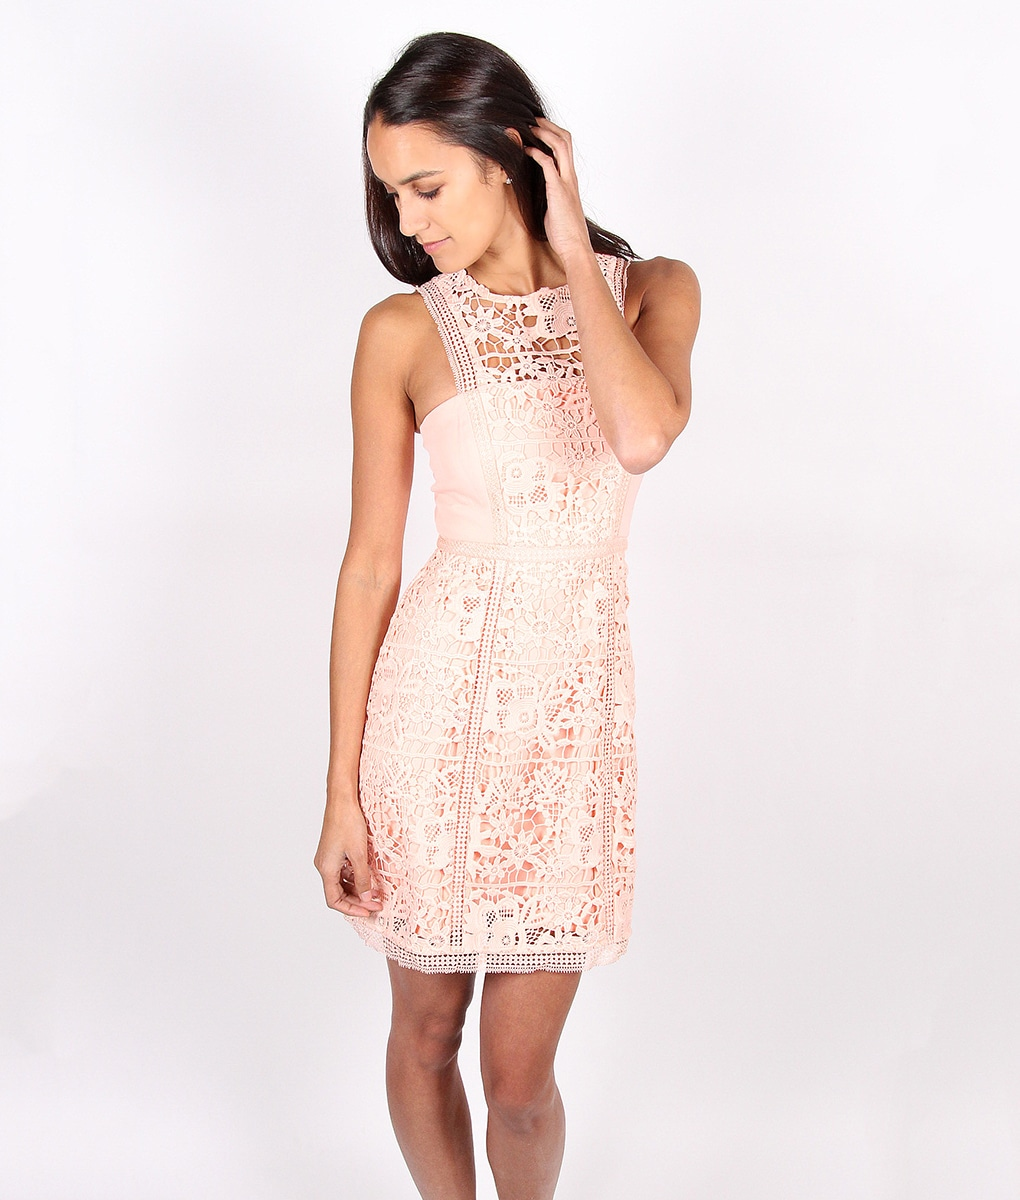 Alila-Pale-Peach-Lace-Dress-for-wedding-by-Lumier-by-Bariano-back